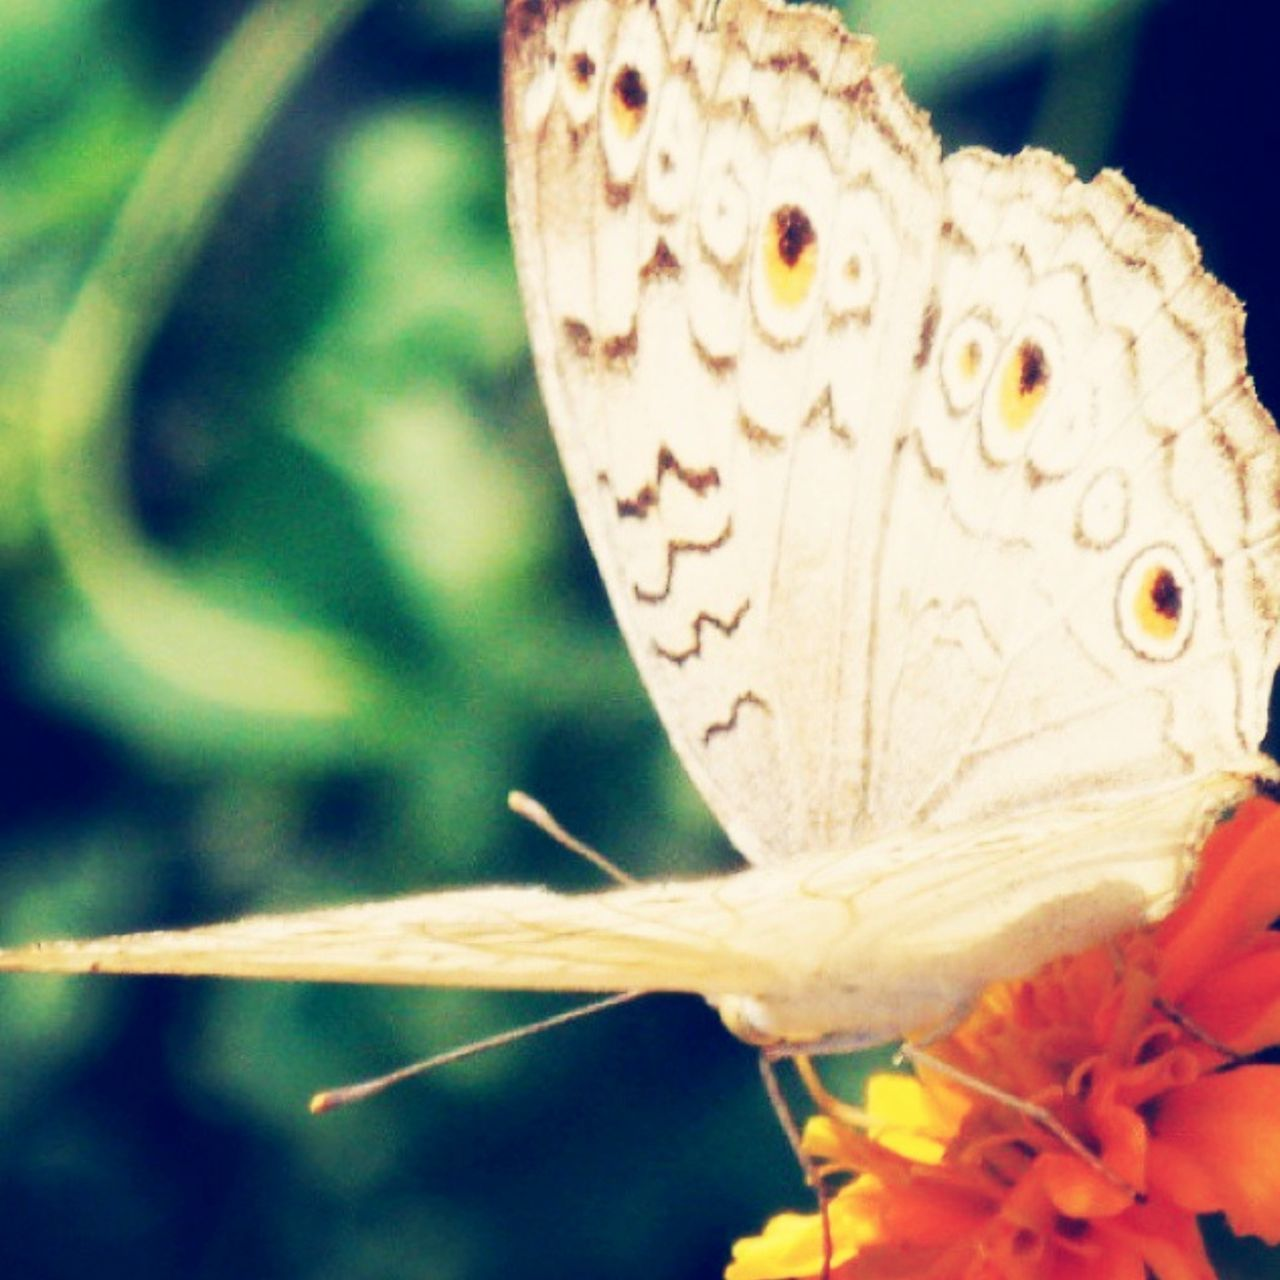 one animal, animals in the wild, animal themes, insect, butterfly - insect, close-up, nature, animal wildlife, no people, flower, outdoors, day, butterfly, beauty in nature, fragility, growth, freshness, perching, spread wings, flower head